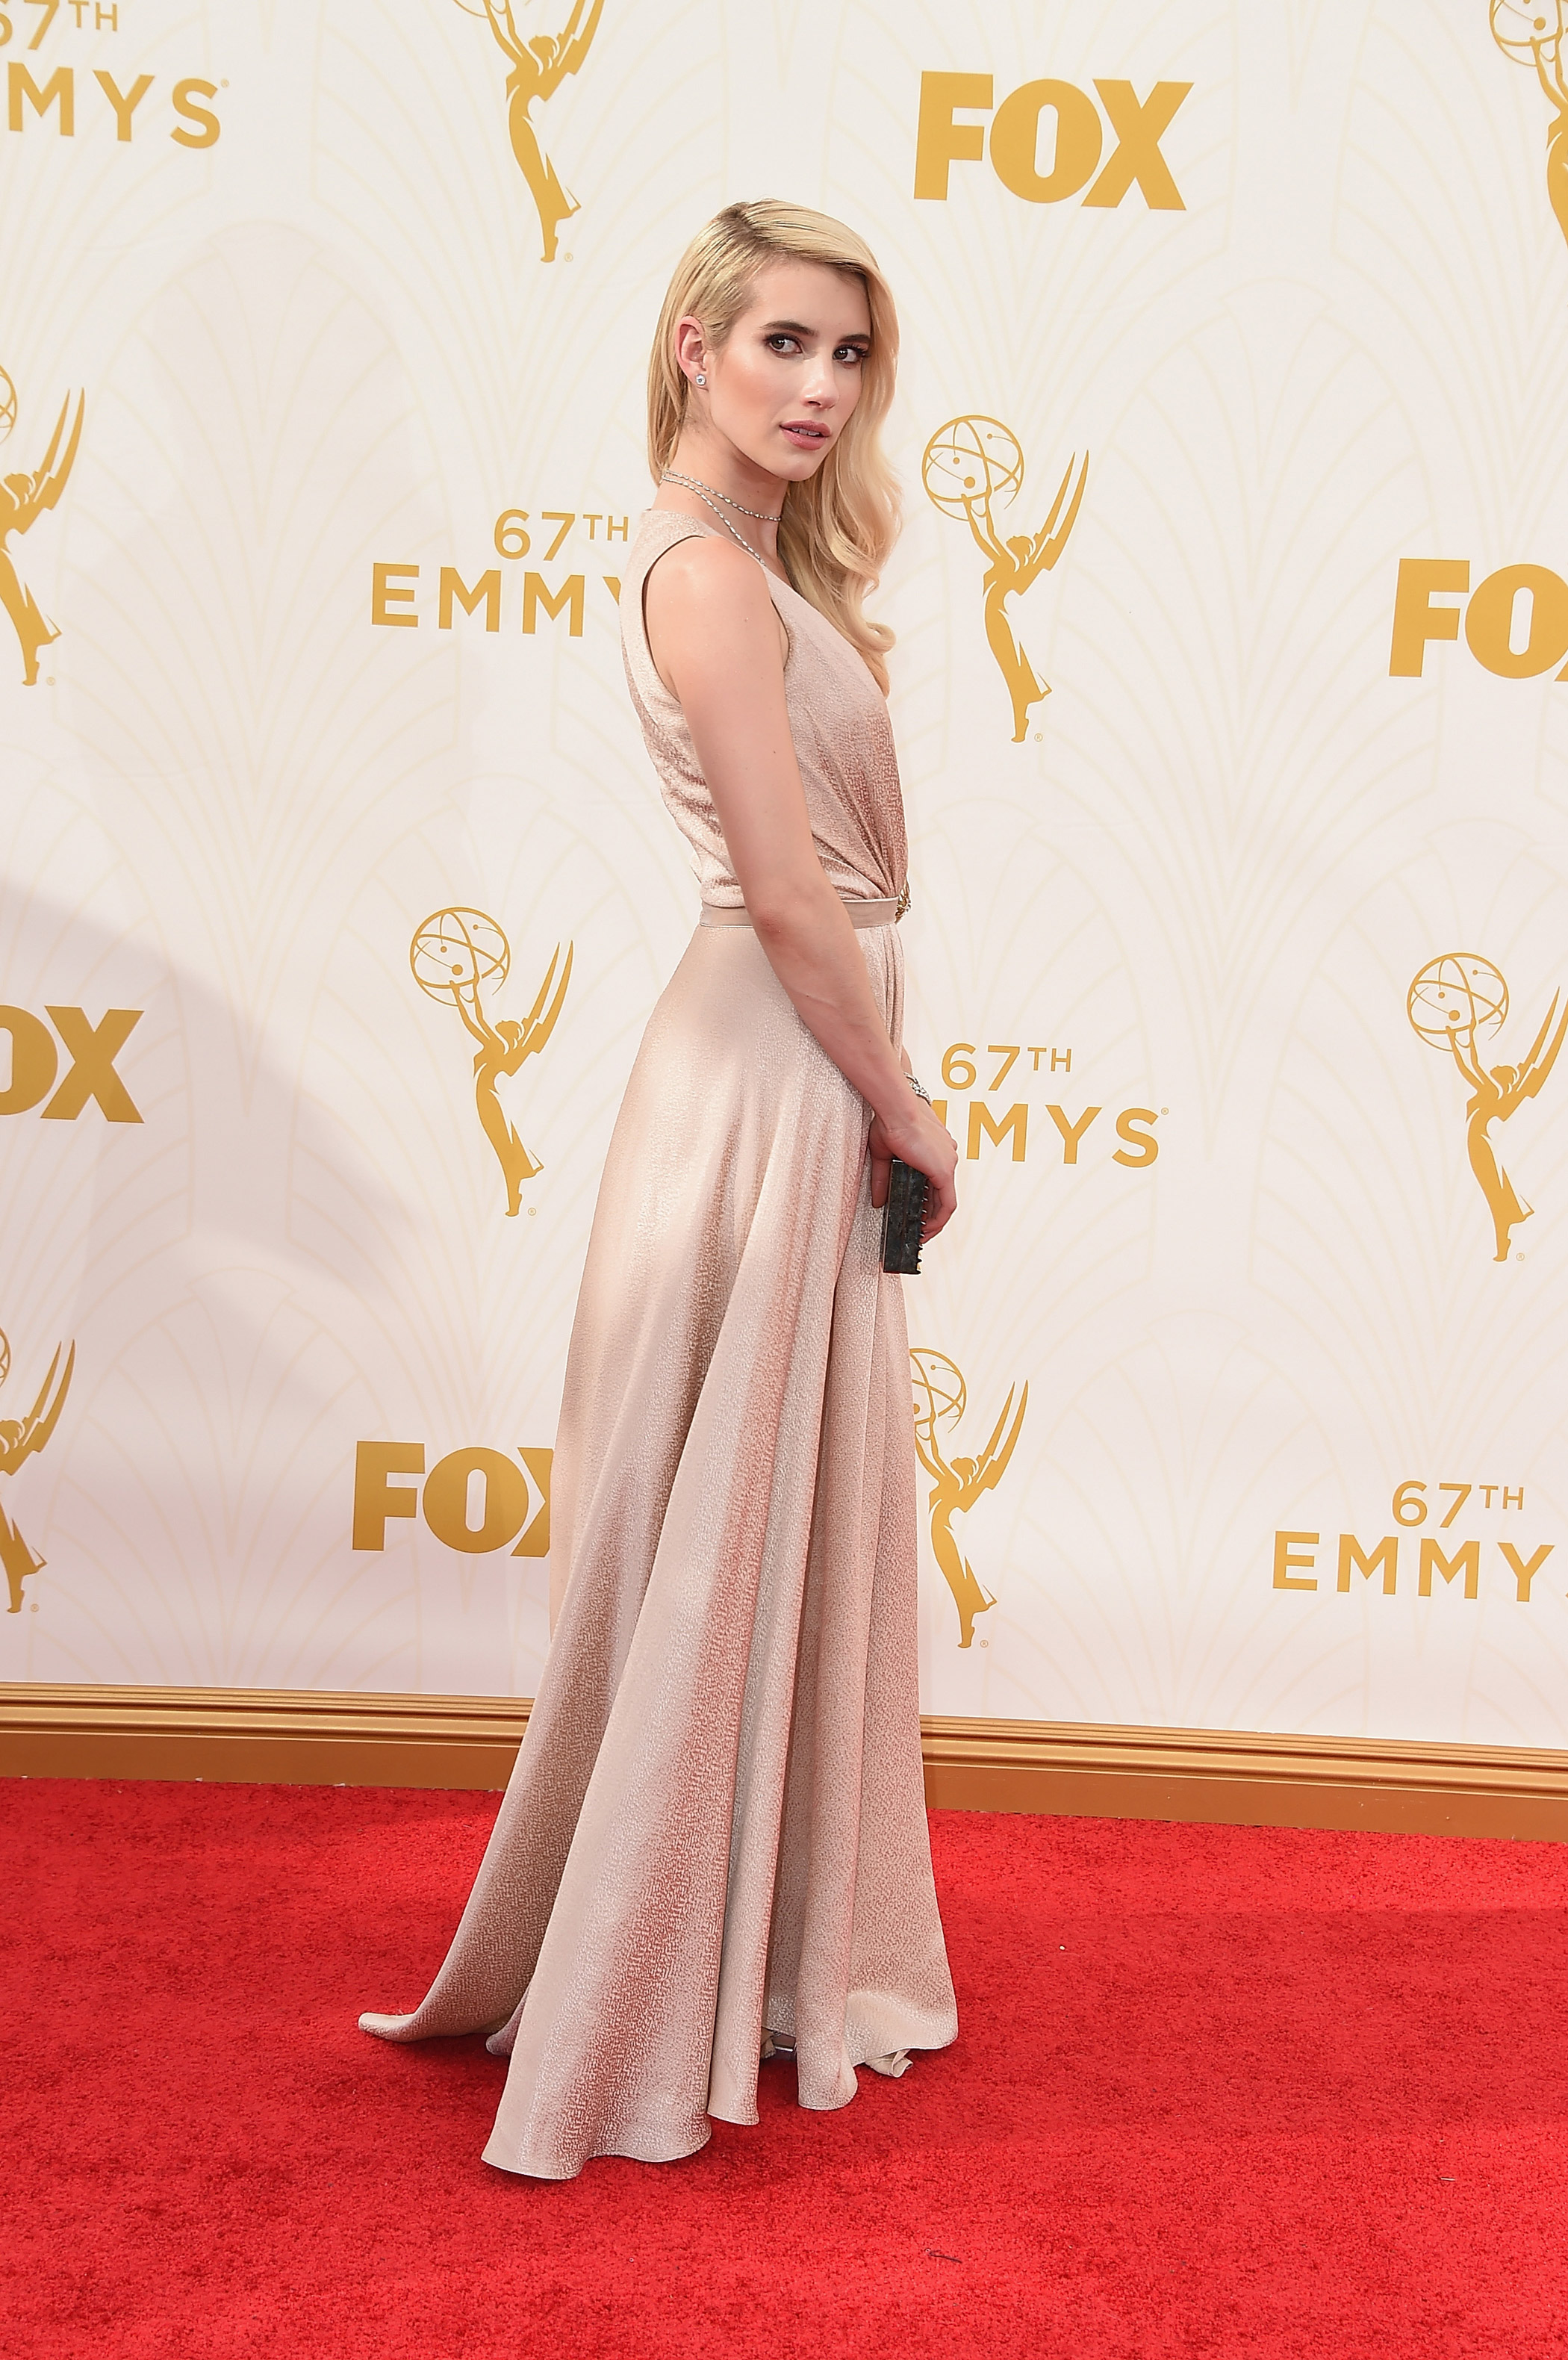 Emma Roberts at the 67th Emmy Award on Sept. 20, 2015 in Los Angeles.